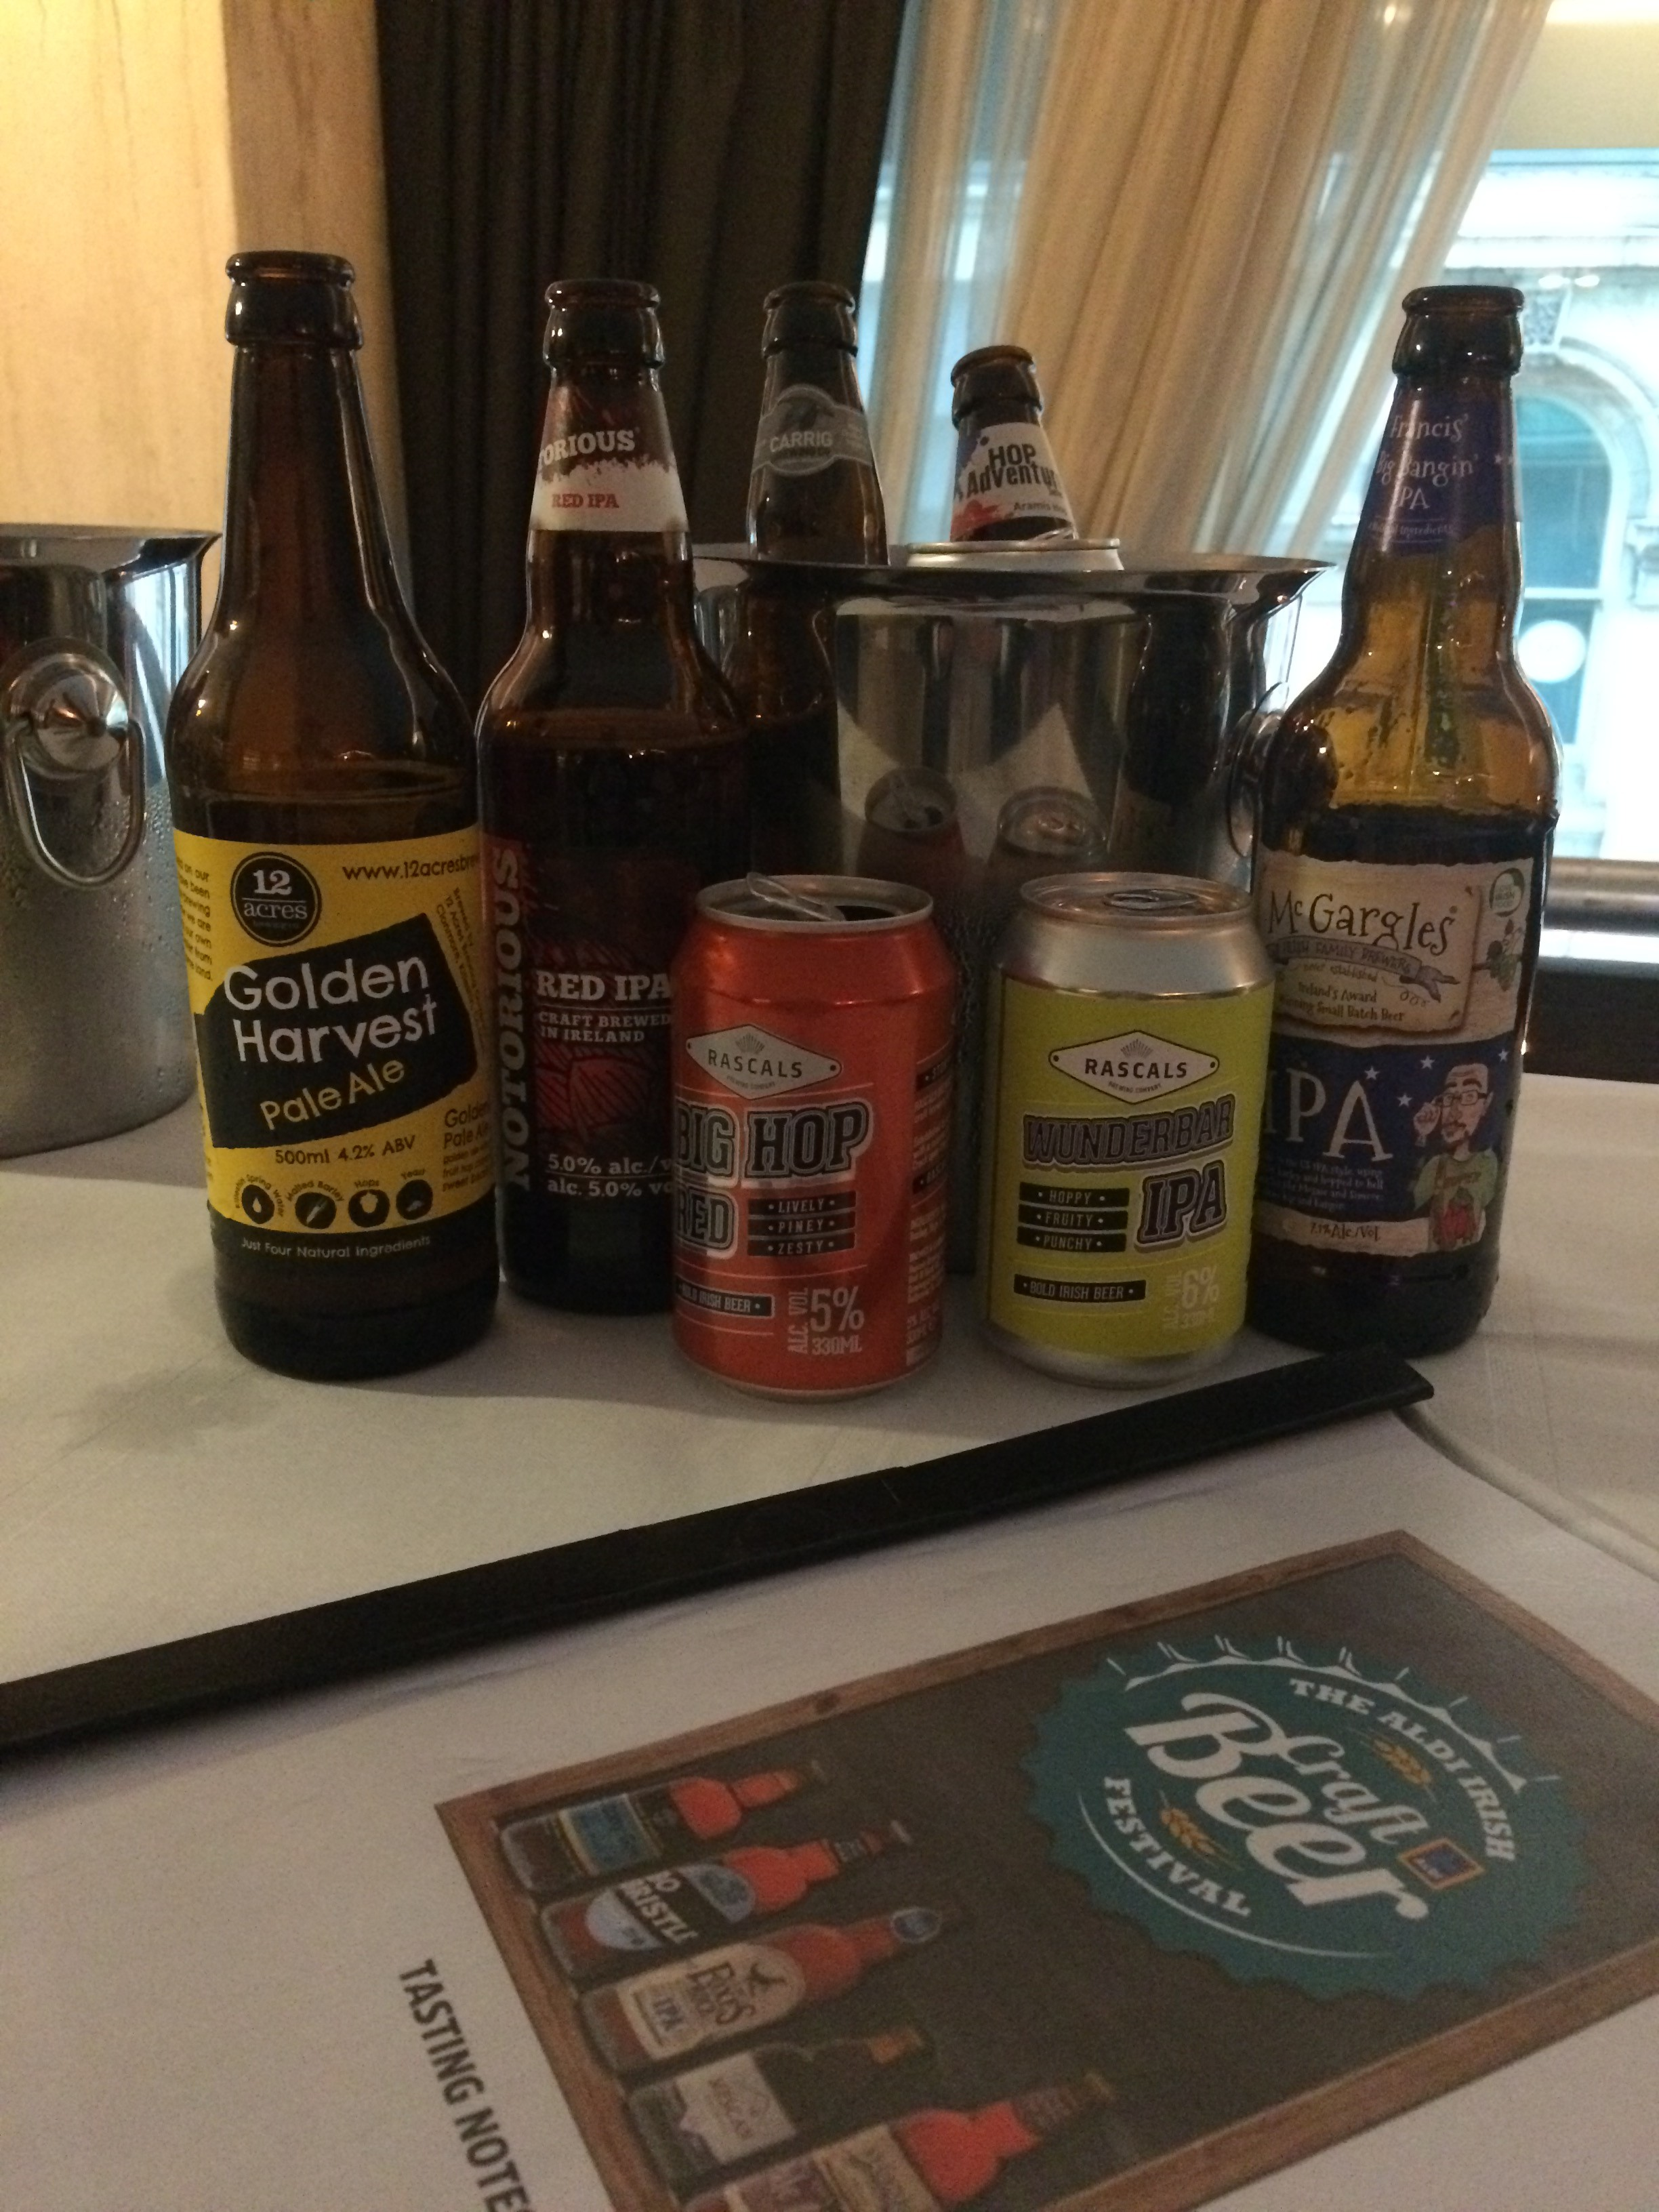 A snapshot of the beers on offer during the promotion, including Golden Harvest Pale Ale produced by 12 Acres for Aldi